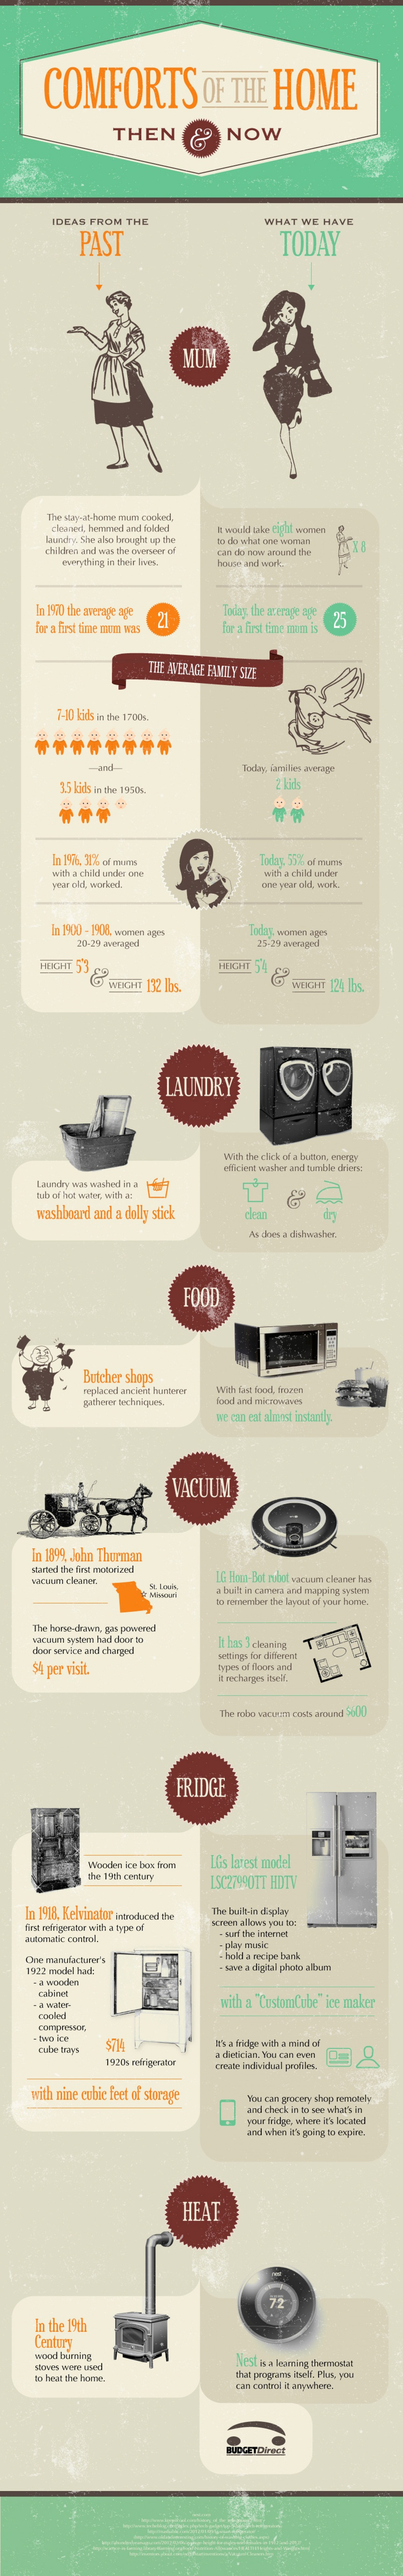 Comforts of Home Infographic